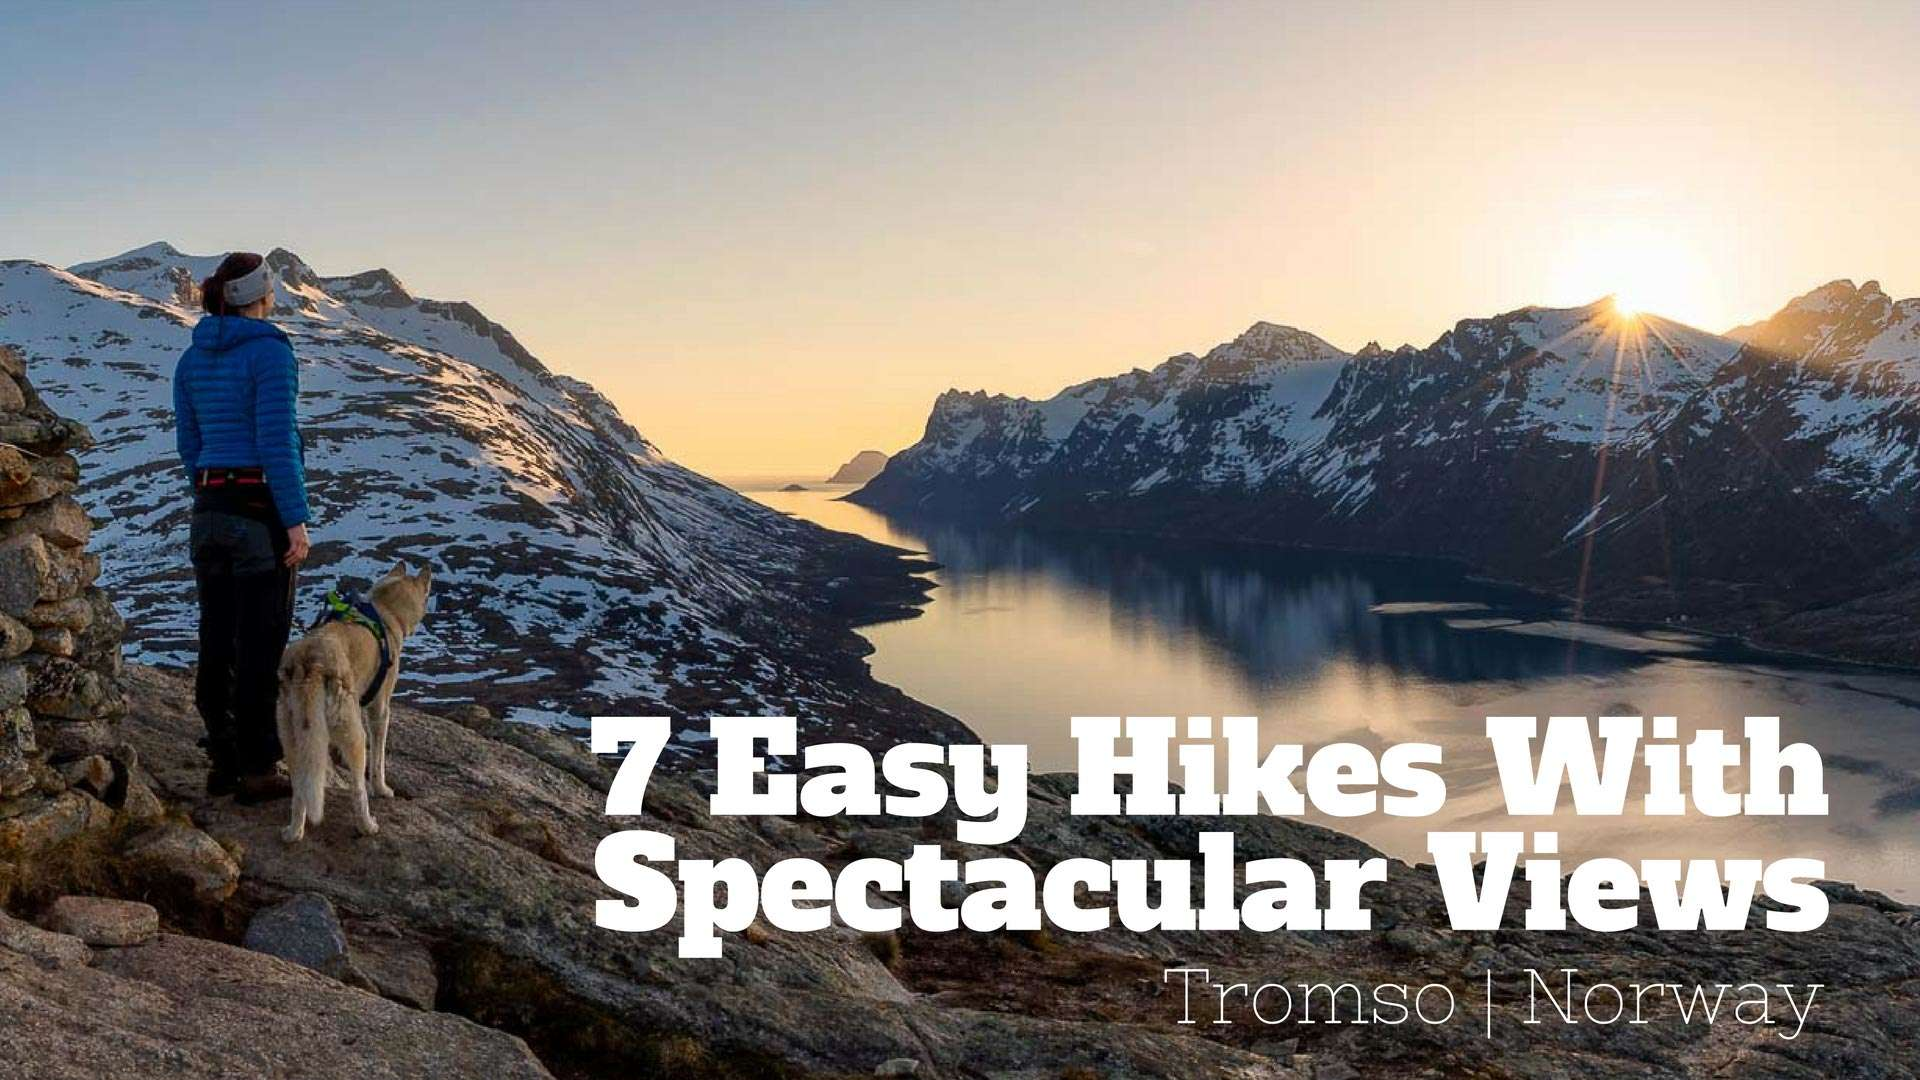 7 Easy Hikes With Spectacular Views In Tromso, Norway